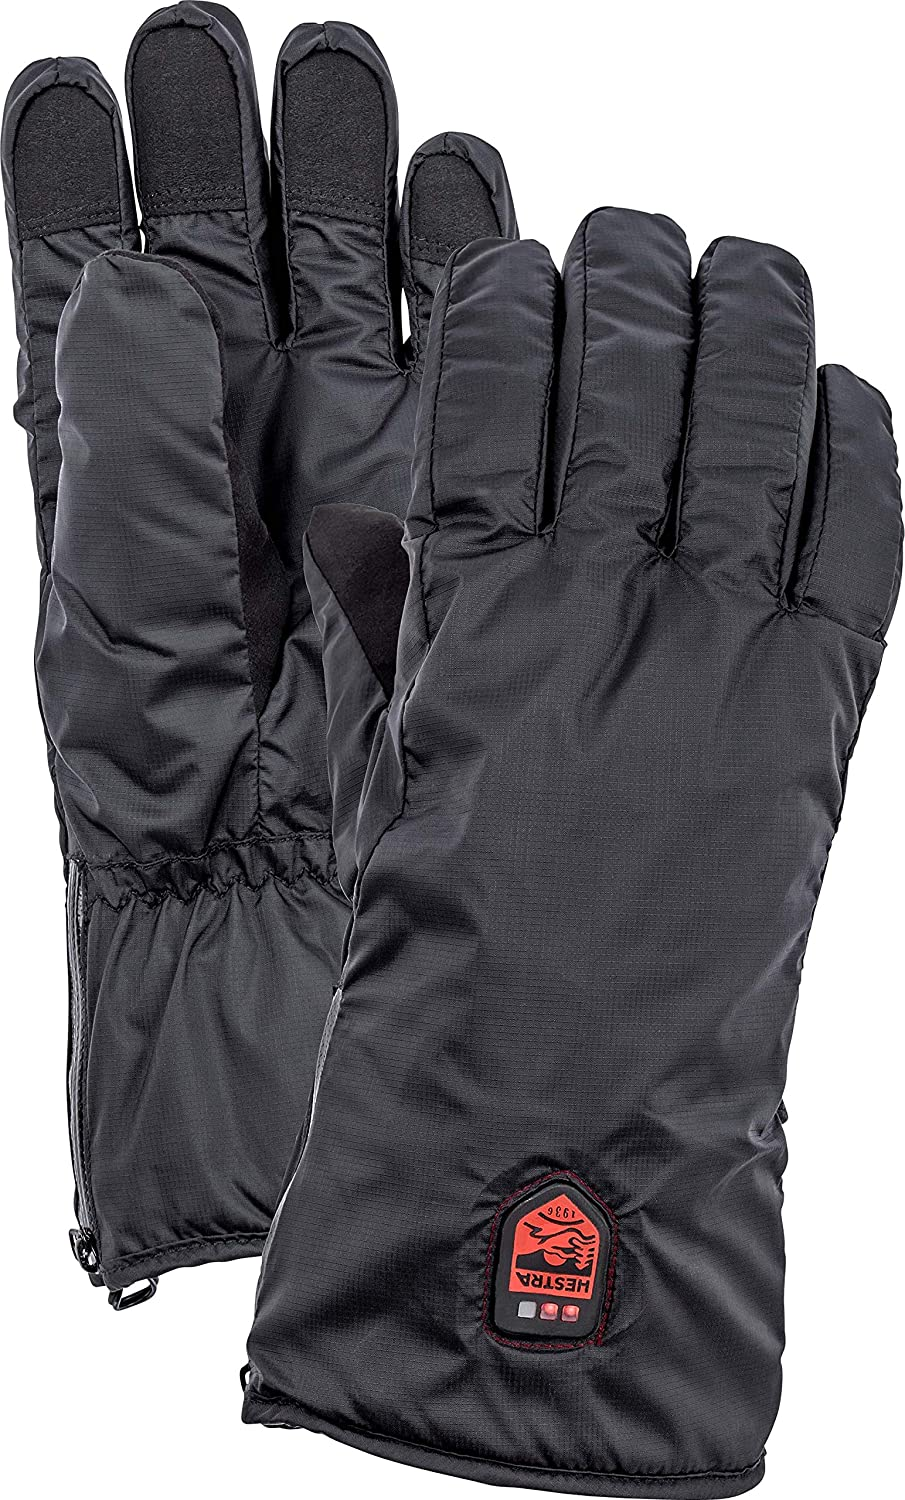 Hestra Heated Glove Liner - Rechargeable Electric Glove Liner for Winter, Skiing, and Snowboarding